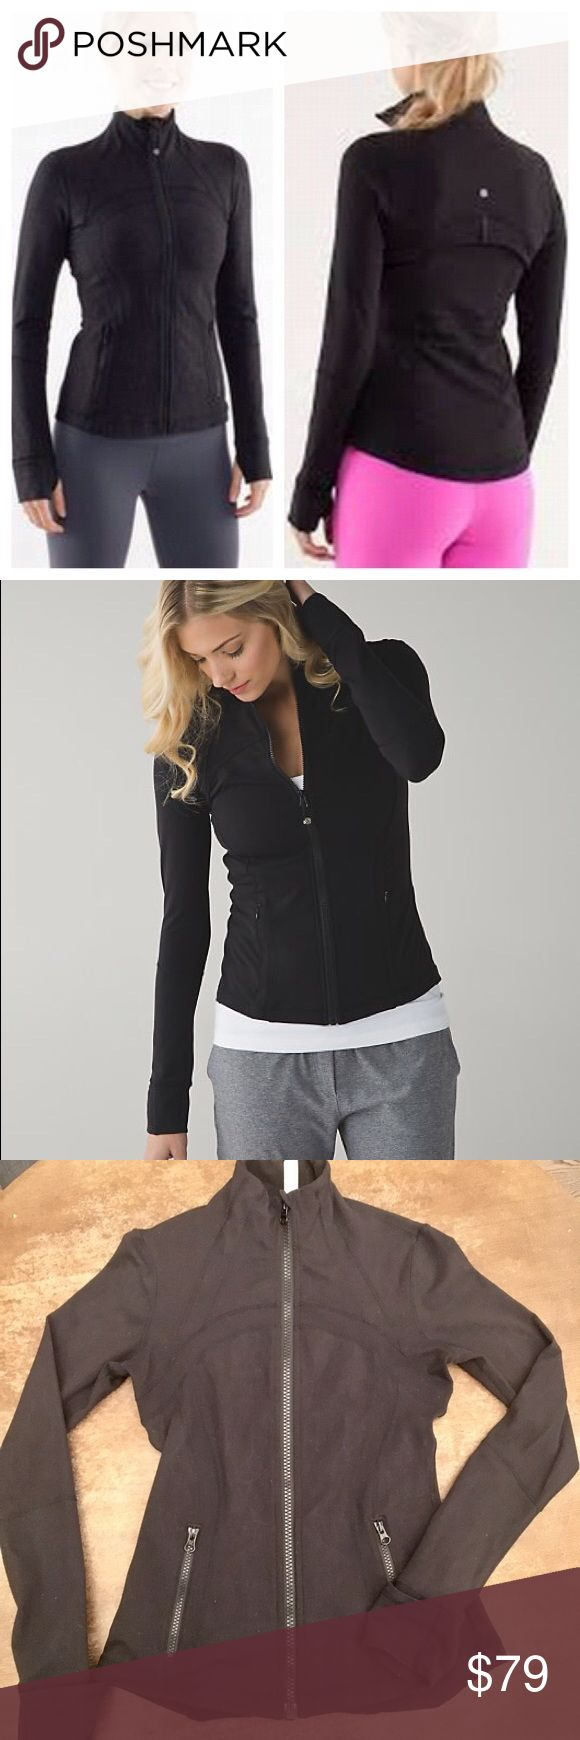 Lululemon Define Jacket Black Signature Define Jacket from Lululemon in black. Fitted jacket with sweat-wicking fabric and built-in ventilation to take you to and from the studio. Added thumbholes and fold-over Cuffins™ finger covers help to keep the chill out. EUC.  On here to declutter, 🚫 trades. If I want something in your closet badly enough, I'll buy it 😍 Reasonable offers always welcome! lululemon athletica Jackets & Coats